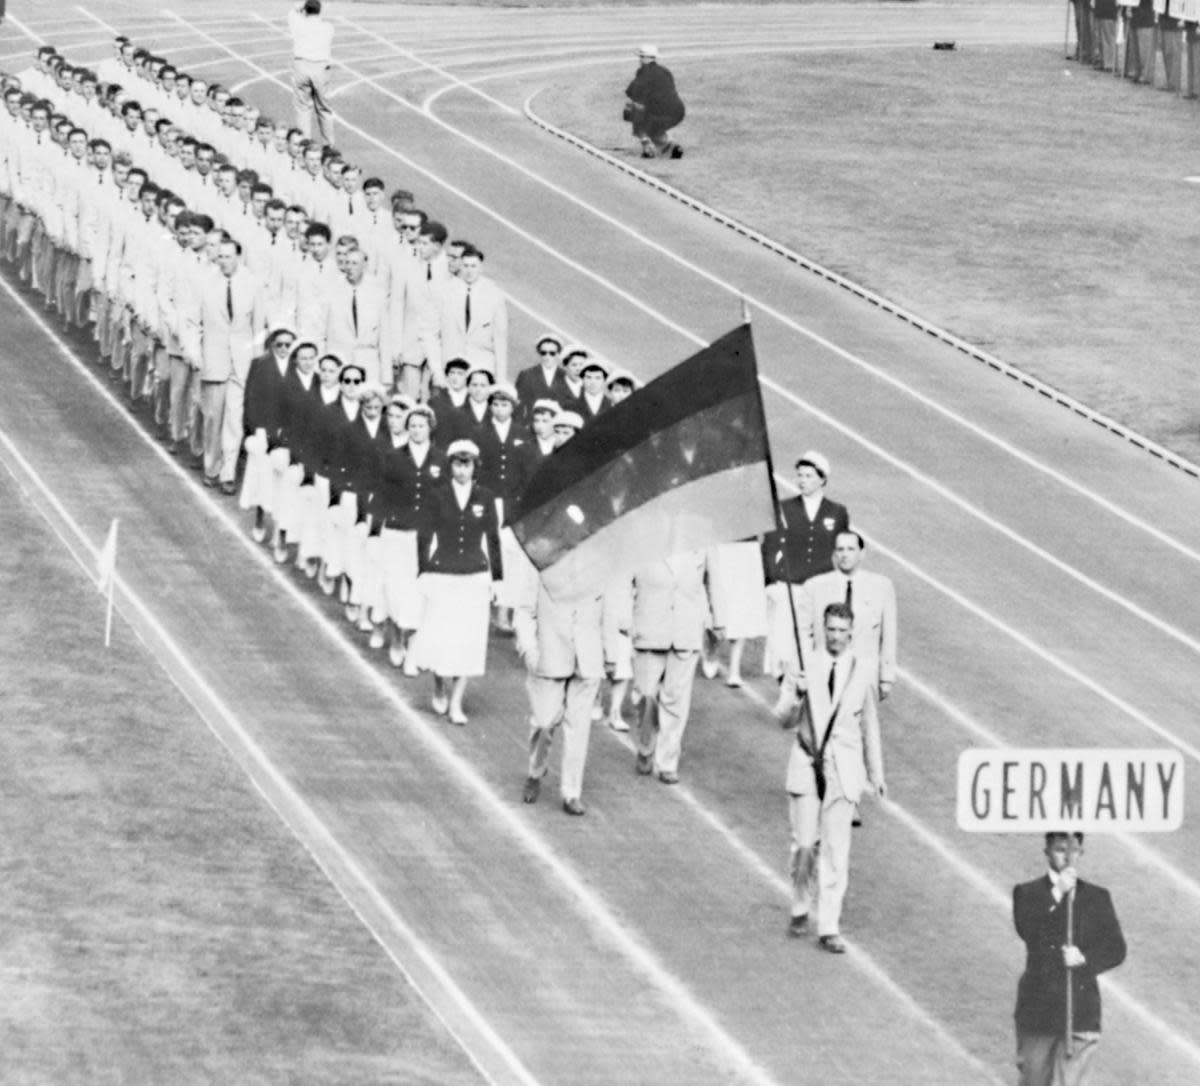 Opening of the 1956 Summer Olympics in Melbourne. (Credit: Ullstein Bild/Getty Images)